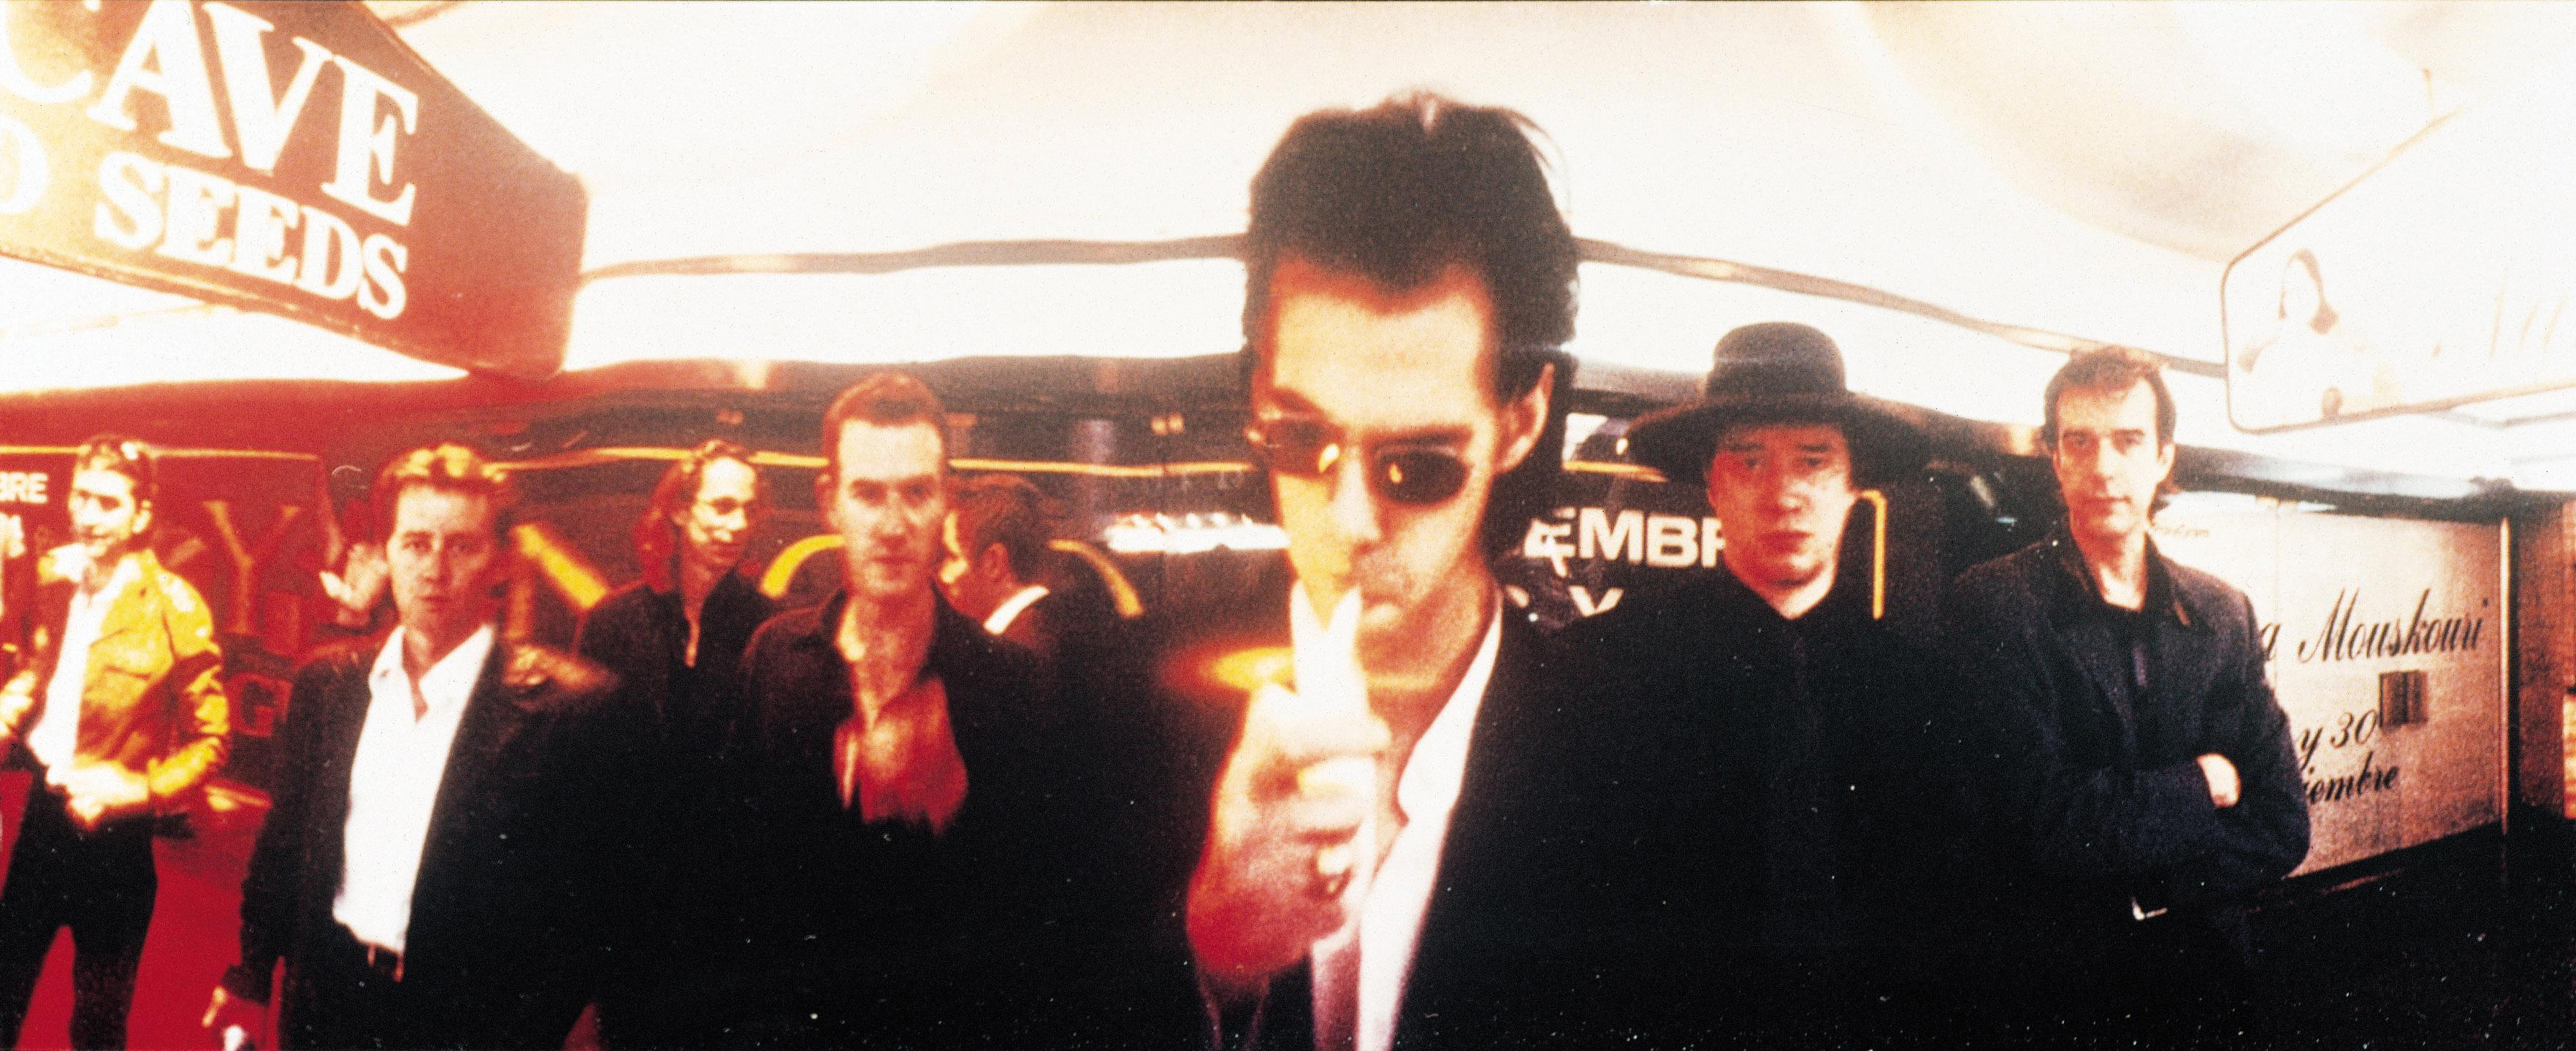 nick_cave_and_the_bad_seeds01.jpg